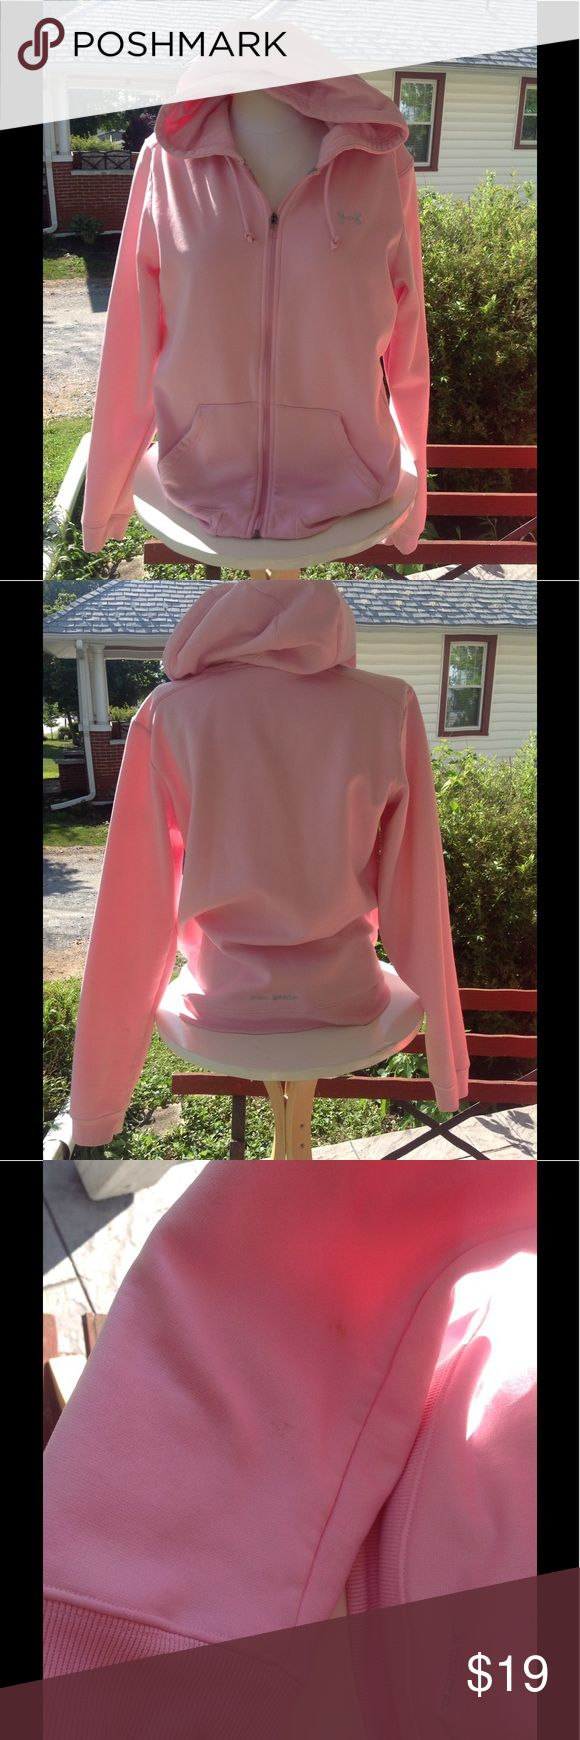 Womans under armour sweatshirt. It is a size xlarge, color is pink, has some stains on the sleeves, in excellent worn condition, sale is final, i do not accept returns. Under Armour Tops Sweatshirts & Hoodies